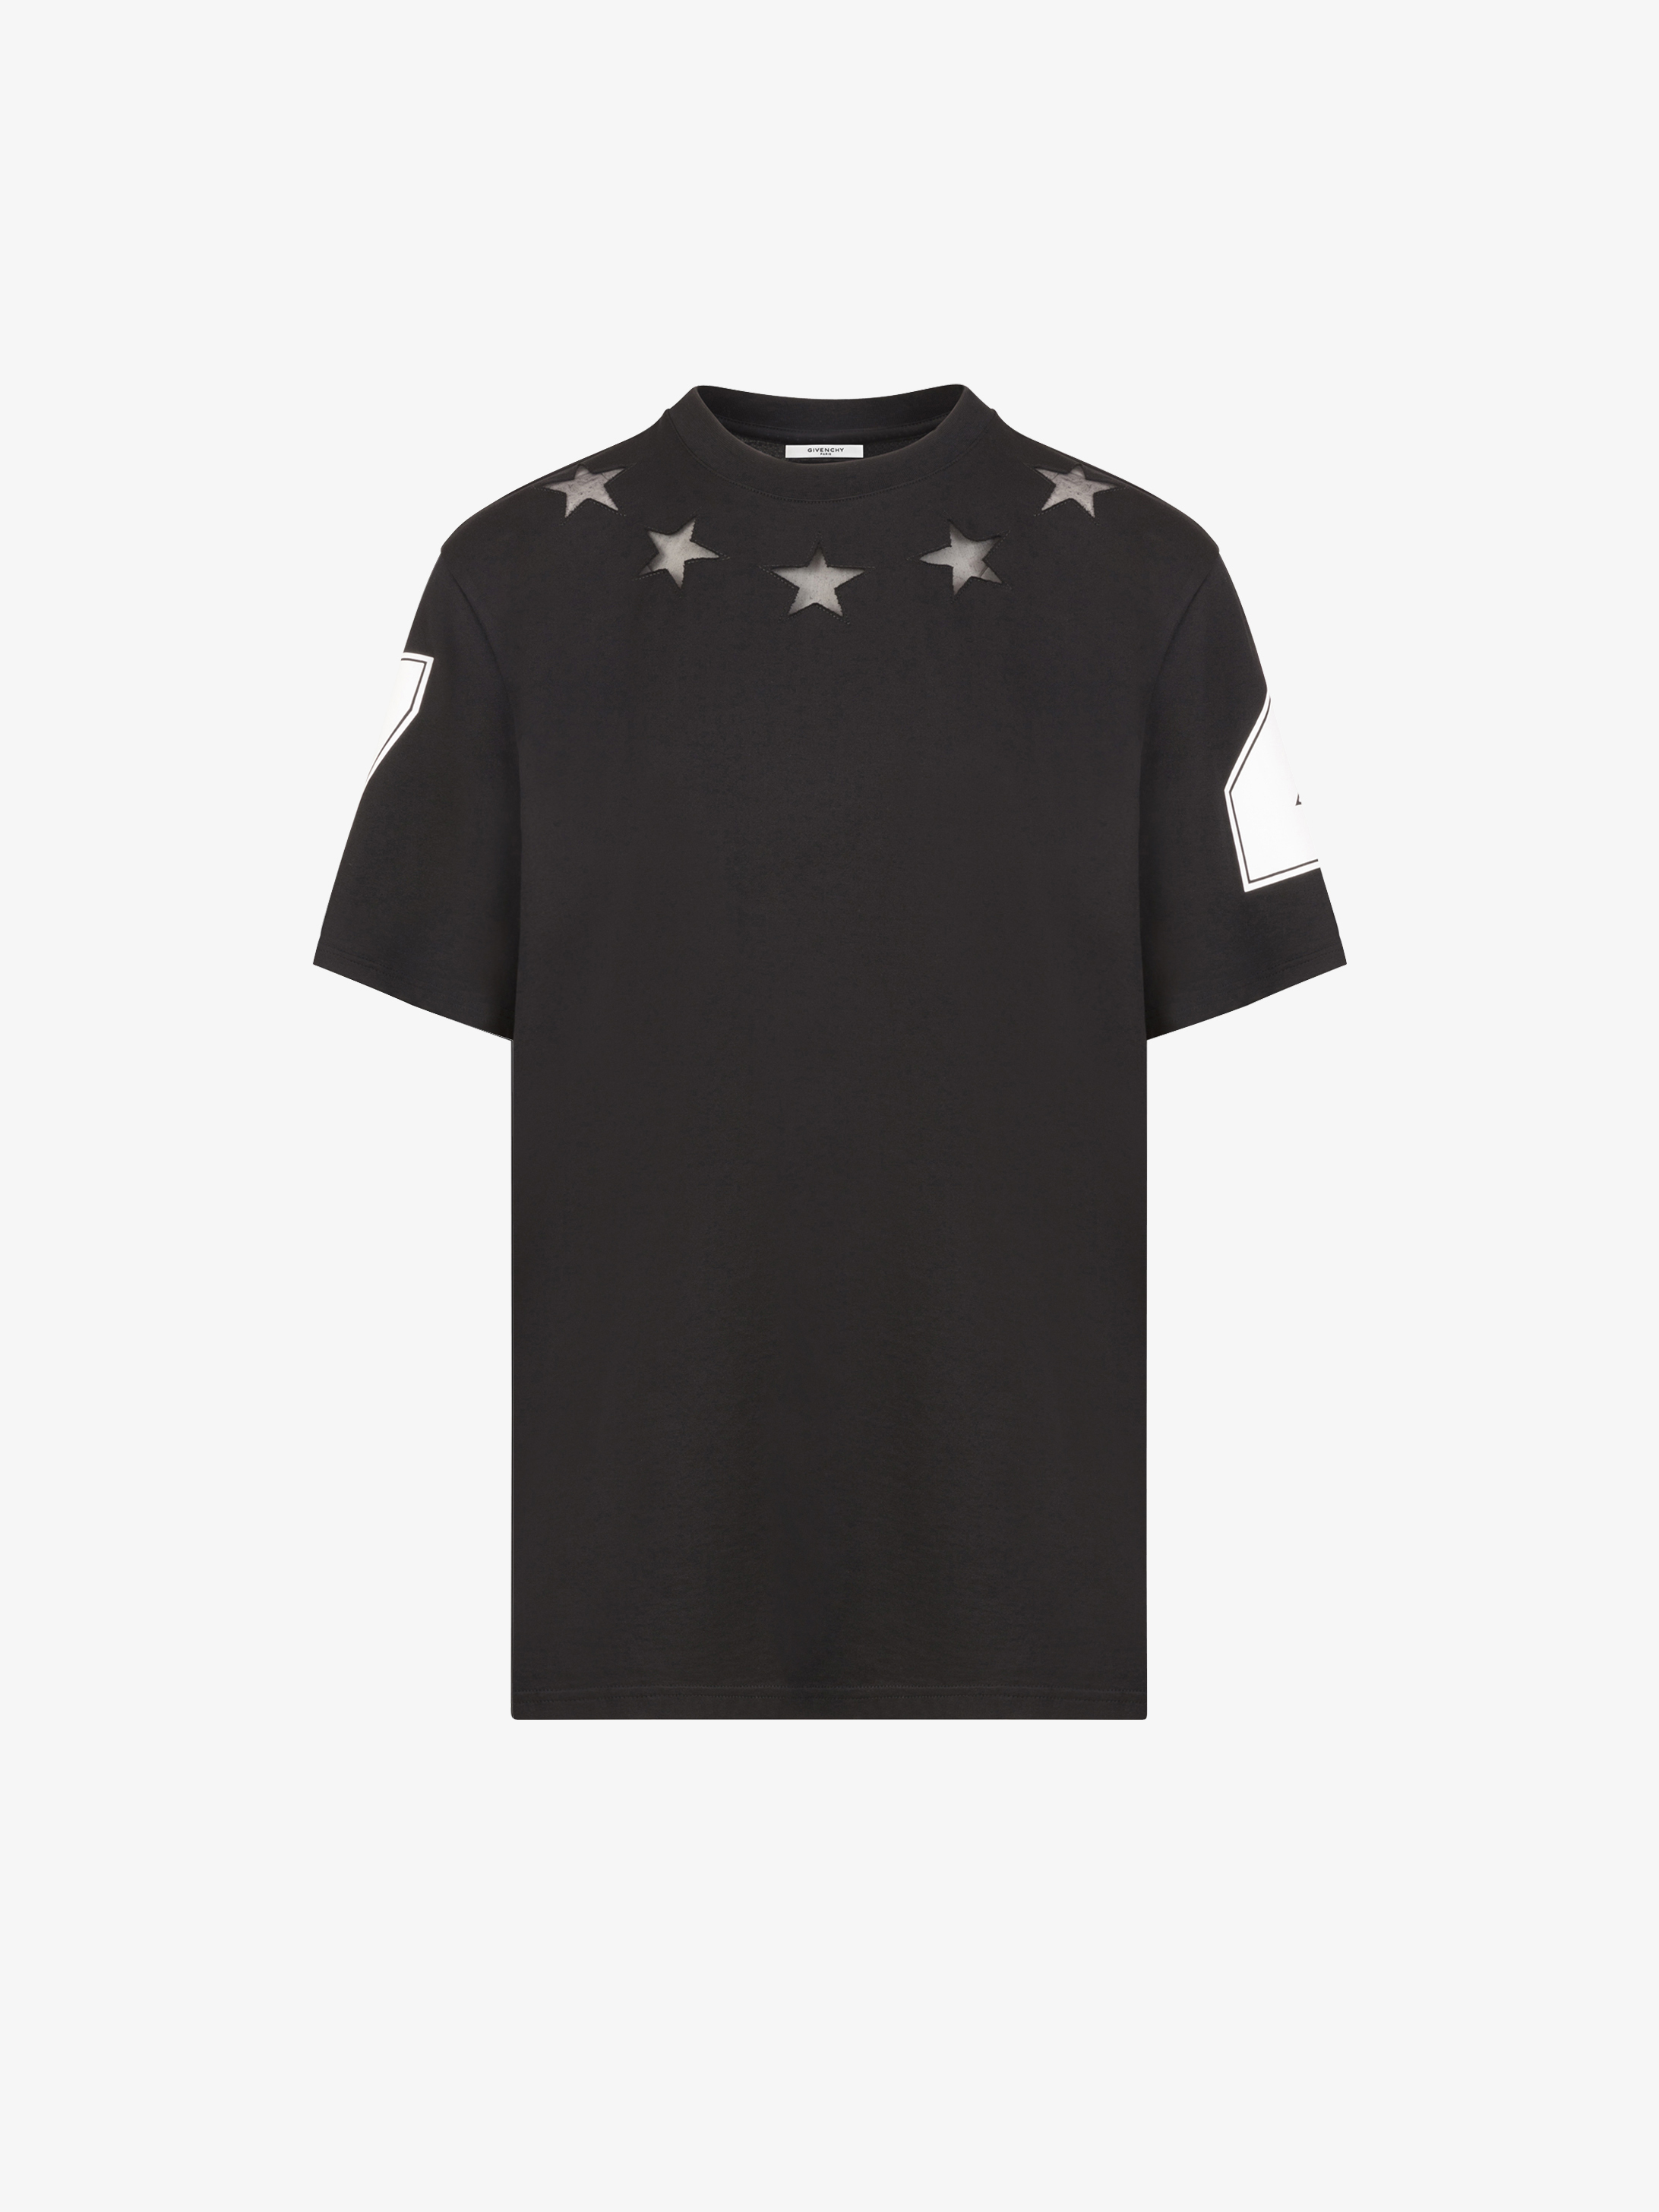 475b04d2589fb9 Givenchy Stars and 74 details T-shirt | GIVENCHY Paris